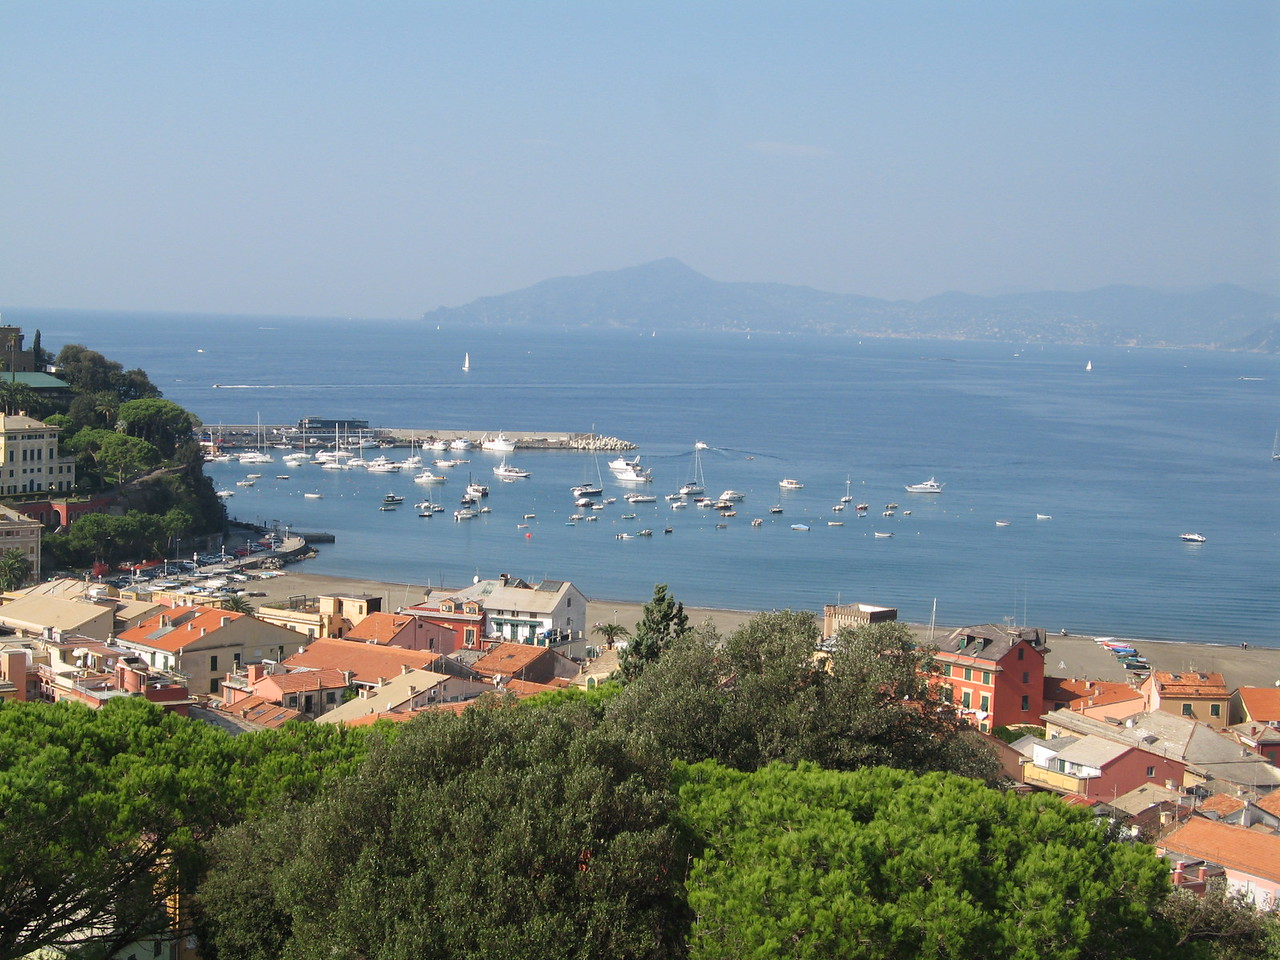 View of Bay of Fables from Hotel Vis a' Vis